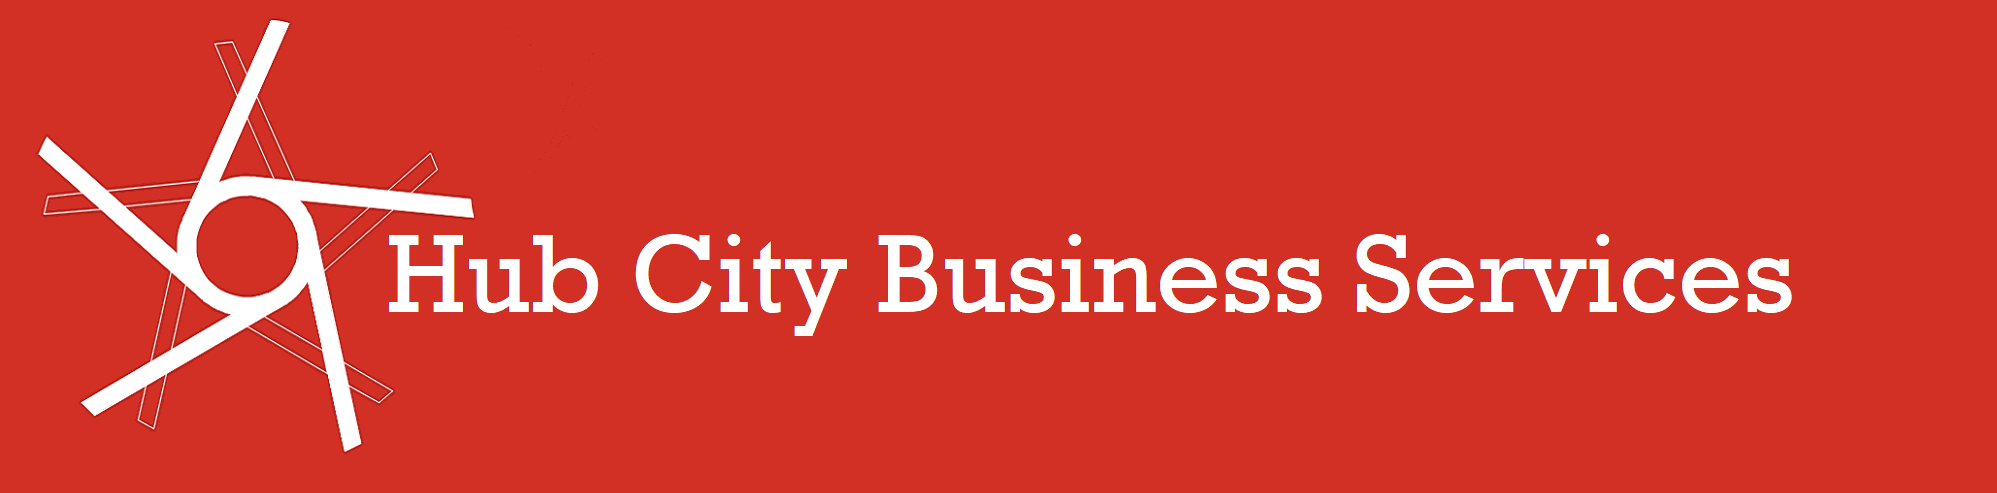 HUB CITY BUSINESS SERVICES logo